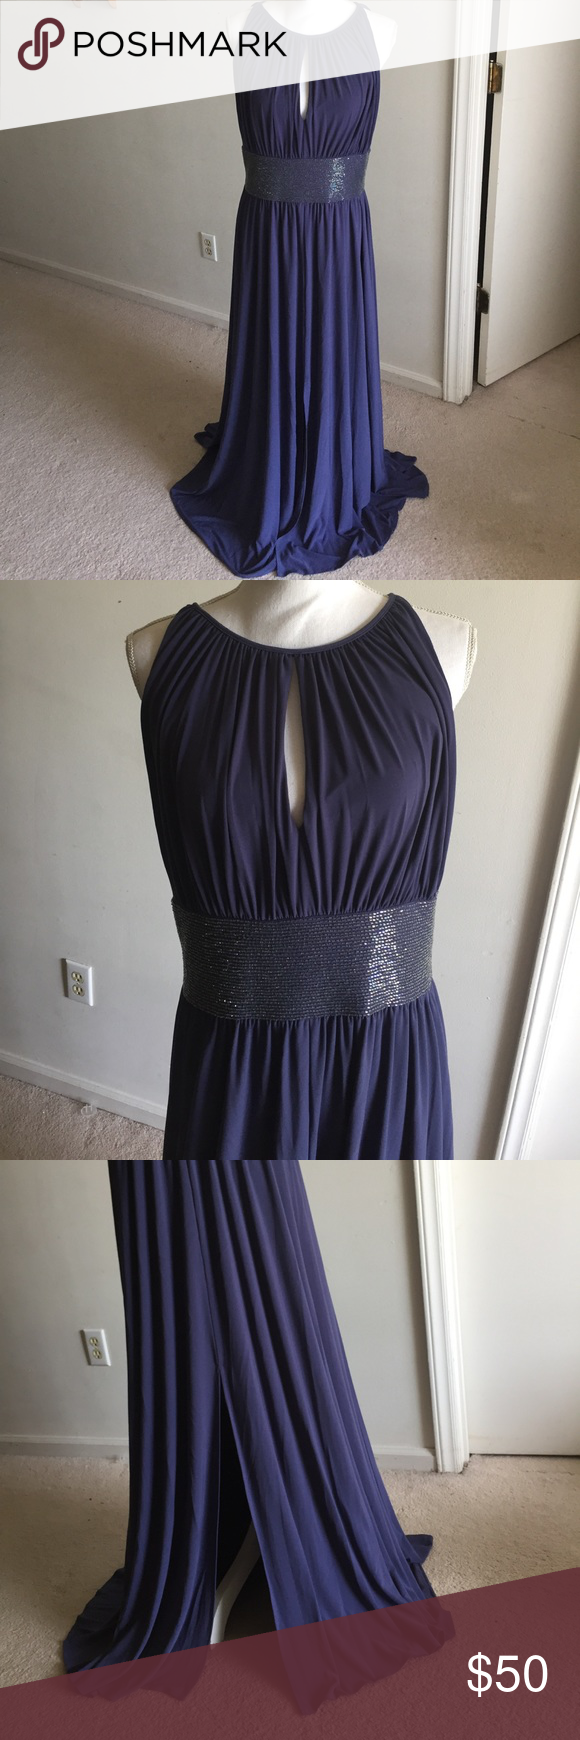 Js boutique formal dress boutique size and customer support